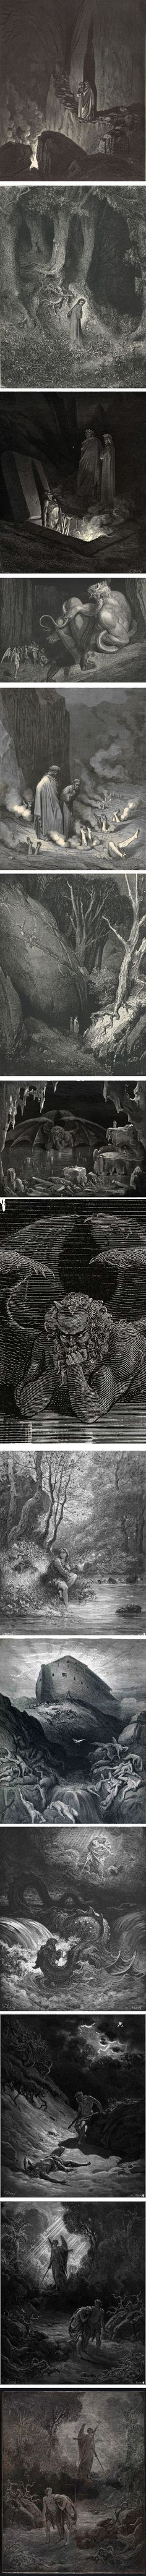 """Louis August Gustave Doré (also known as """"Paul"""" Gustave Doré for reasons of which I'm unsure) was French artist active in the early to mid 19th century. Though he also worked as a painter and sculptor, it is for his work as an illustrator and engraver that he is best known."""